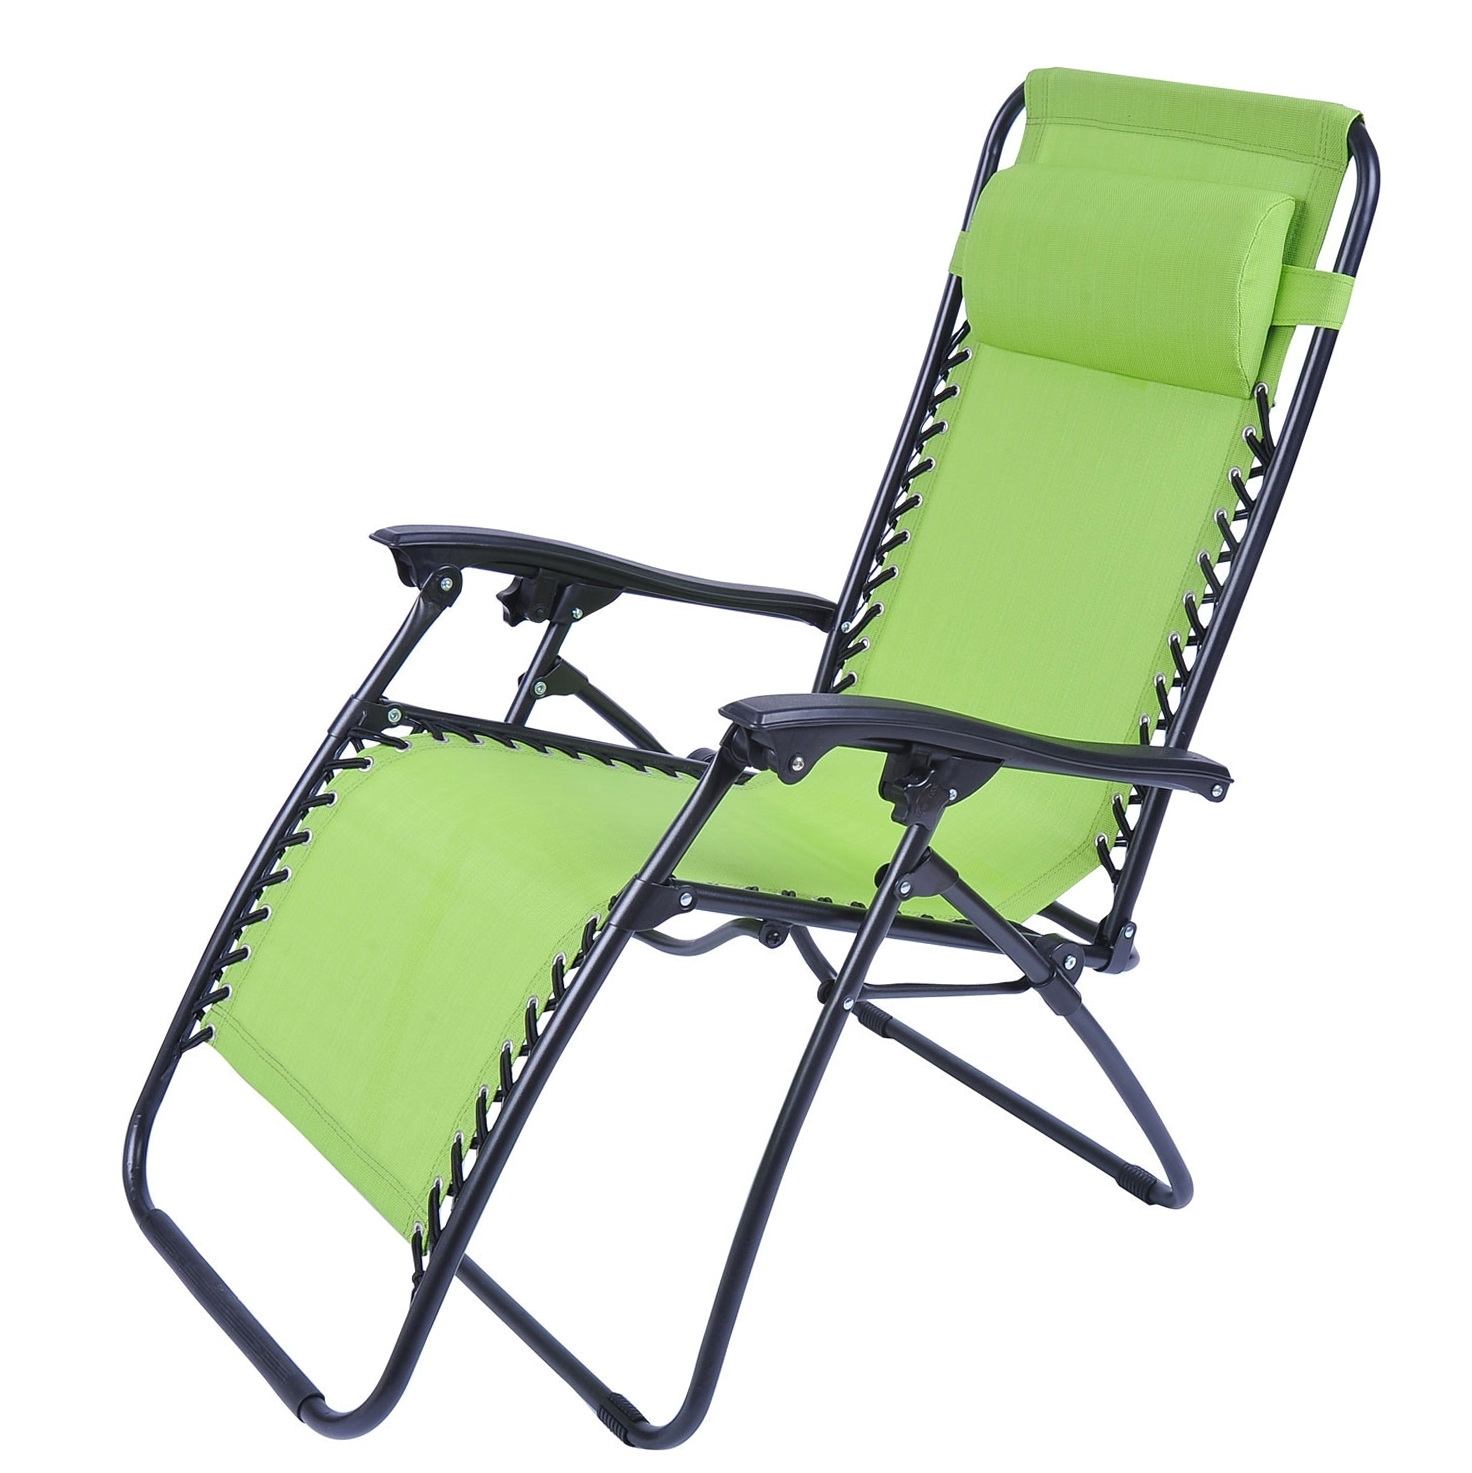 Folding Chaise Lounge Chair Patio Outdoor Pool Beach Lawn Recliner With Widely Used Chaise Lounge Folding Chairs (Gallery 5 of 15)